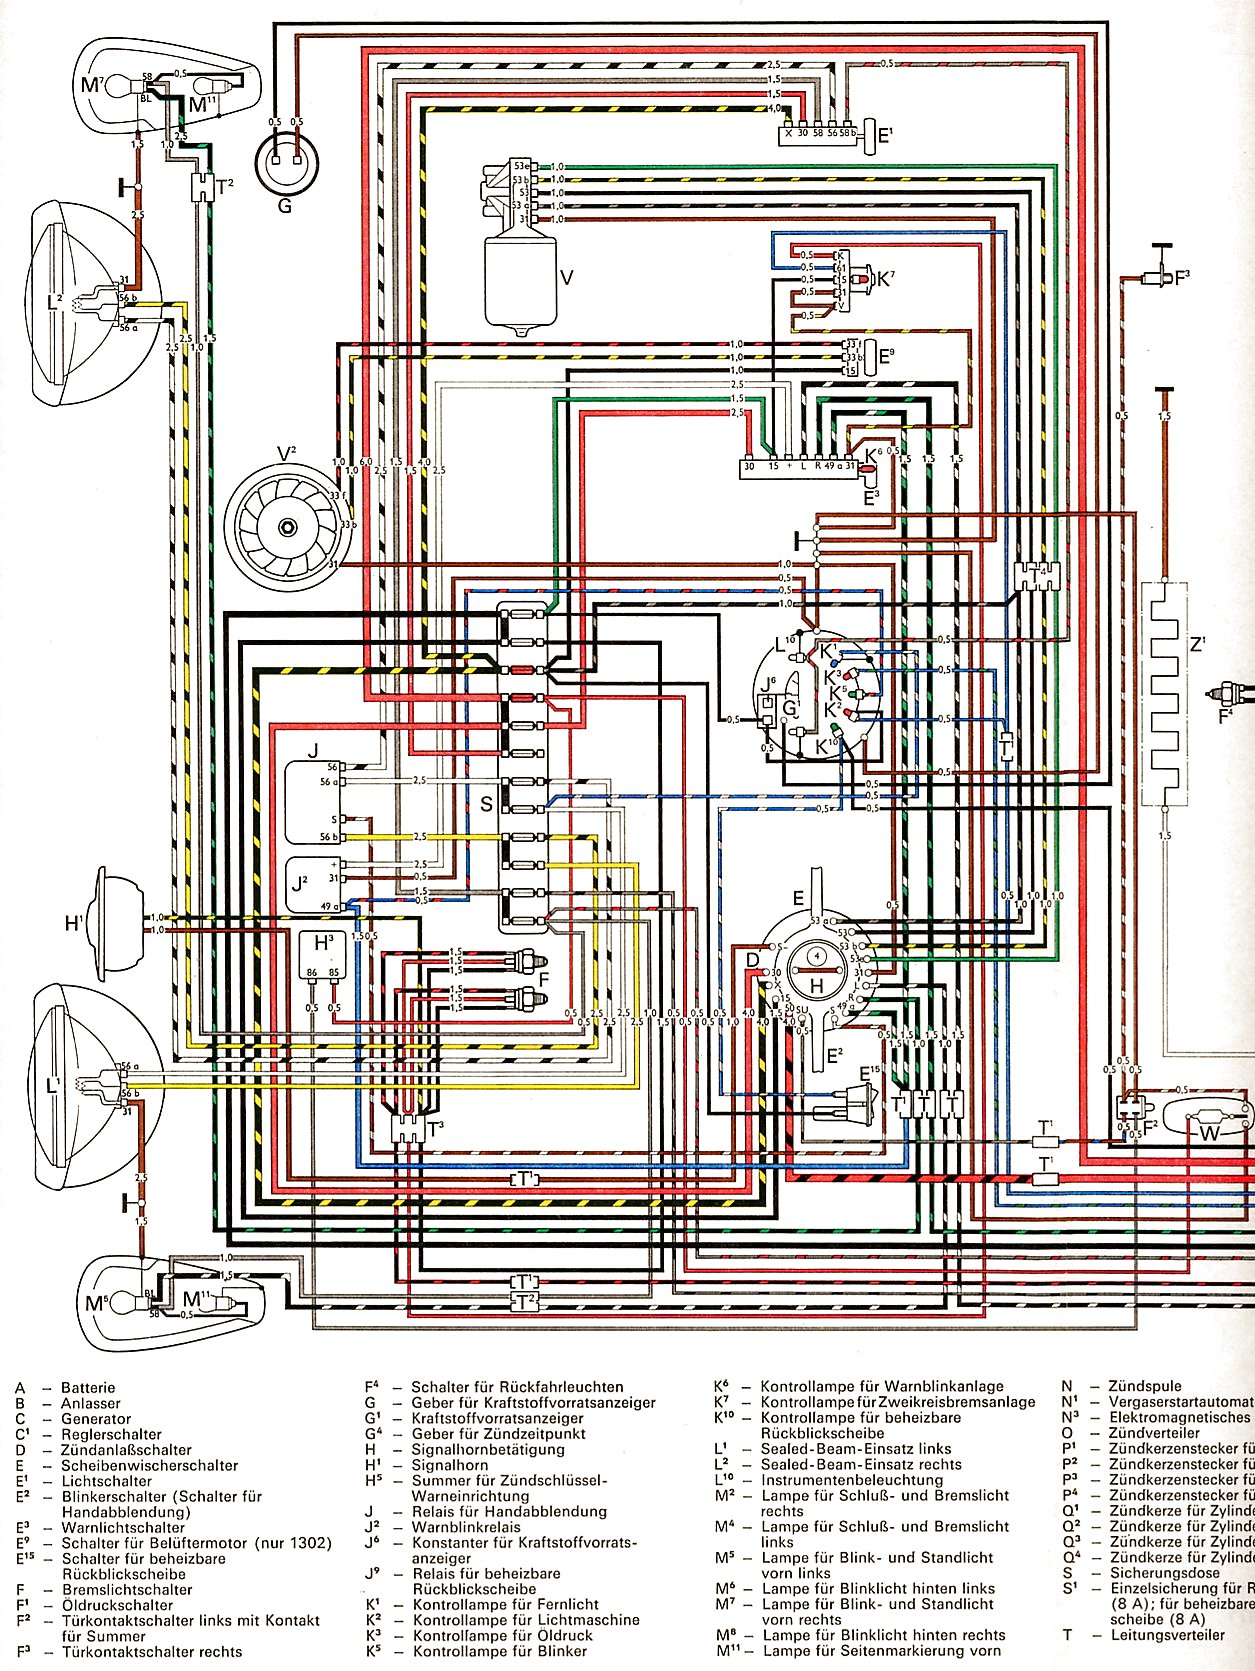 1300_and_1302_USA_from_August_1971 1 74 beetle fuse box diagram ignition diagram shoptalkforums com vw beetle fuse box diagram at gsmx.co